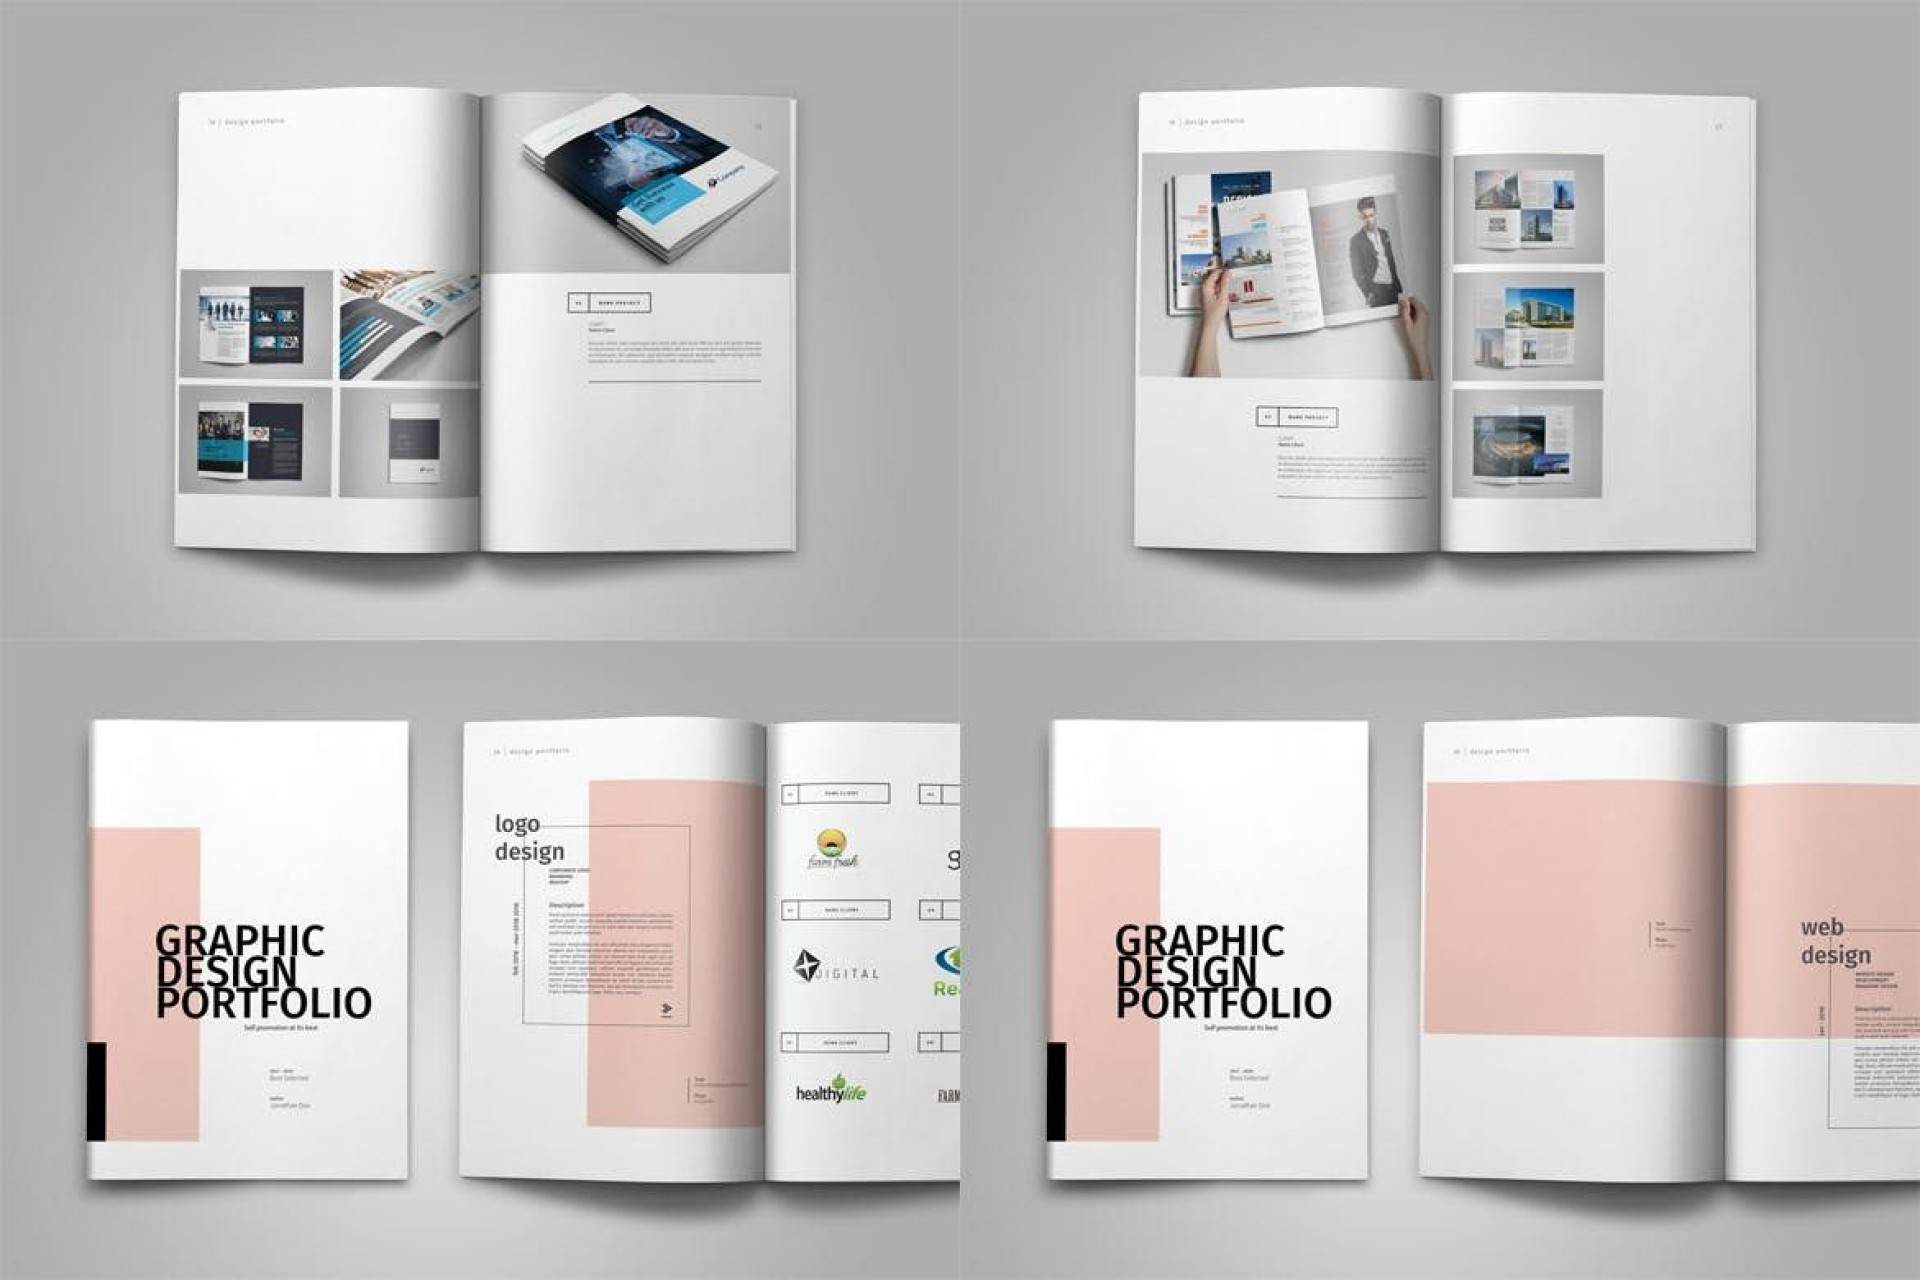 004 Stirring In Design Portfolio Template Highest Quality  Free Indesign A3 Photography Graphic Download1920